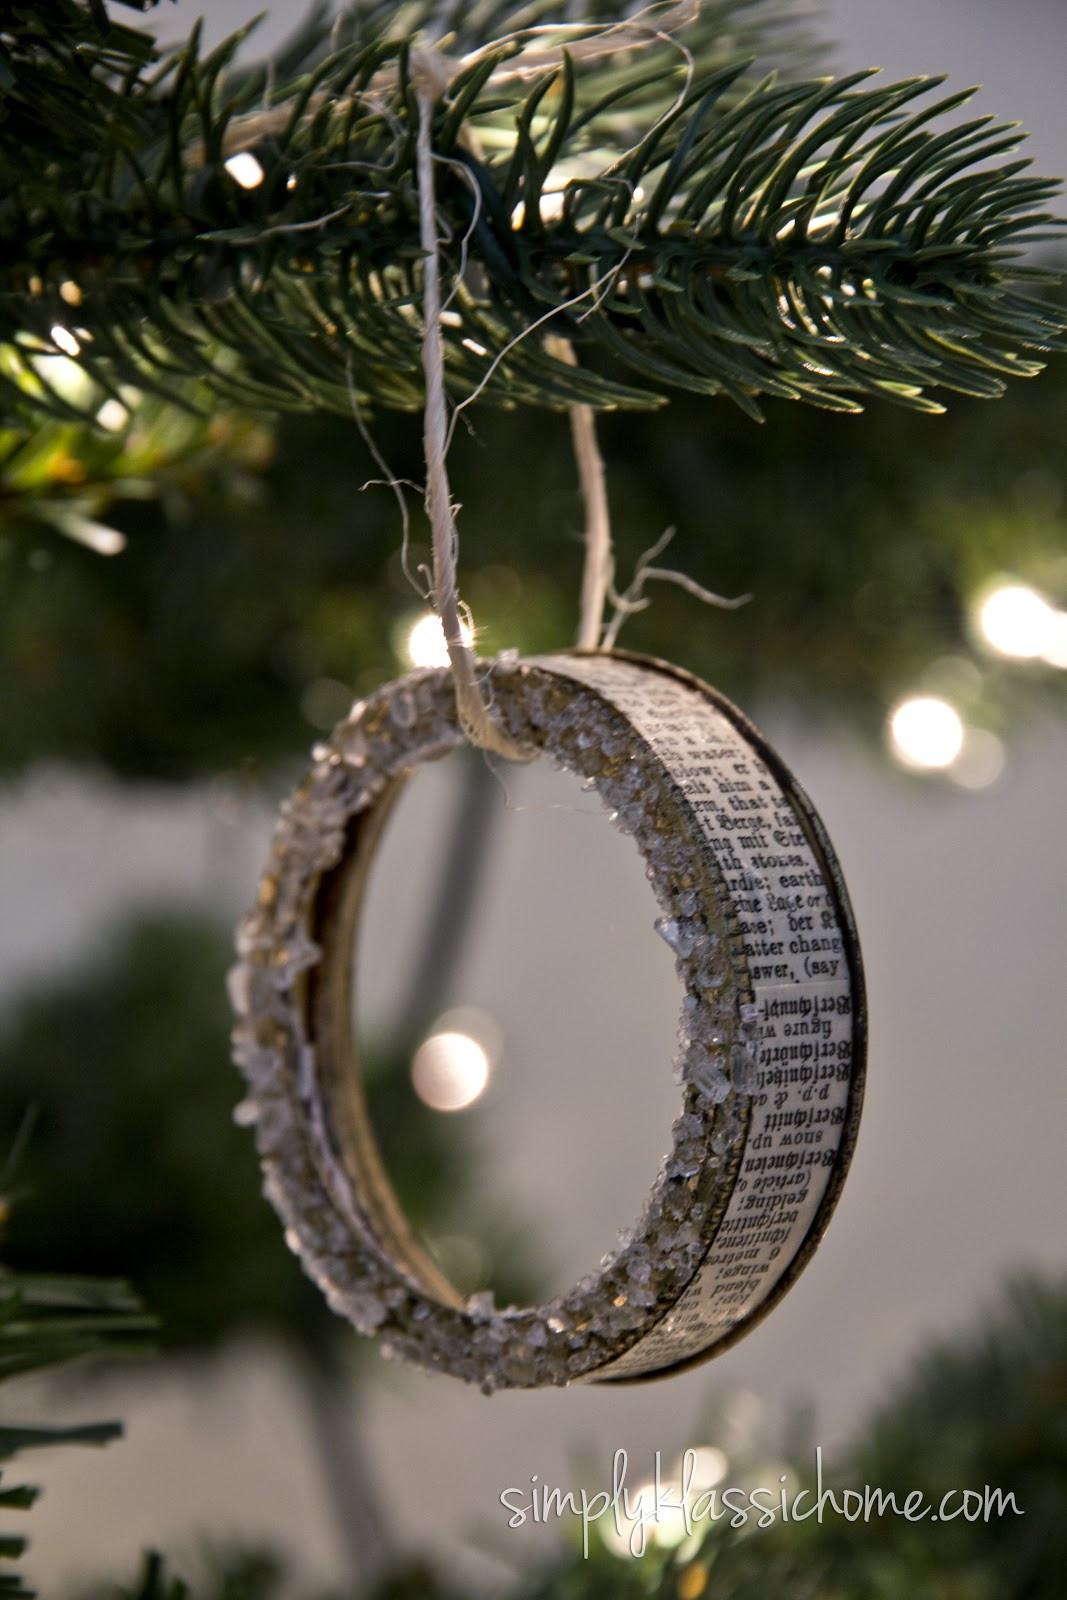 Unique Christmas ornaments Best Of Ten Handmade ornaments In Under An Hour Of Marvelous 47 Photos Unique Christmas ornaments